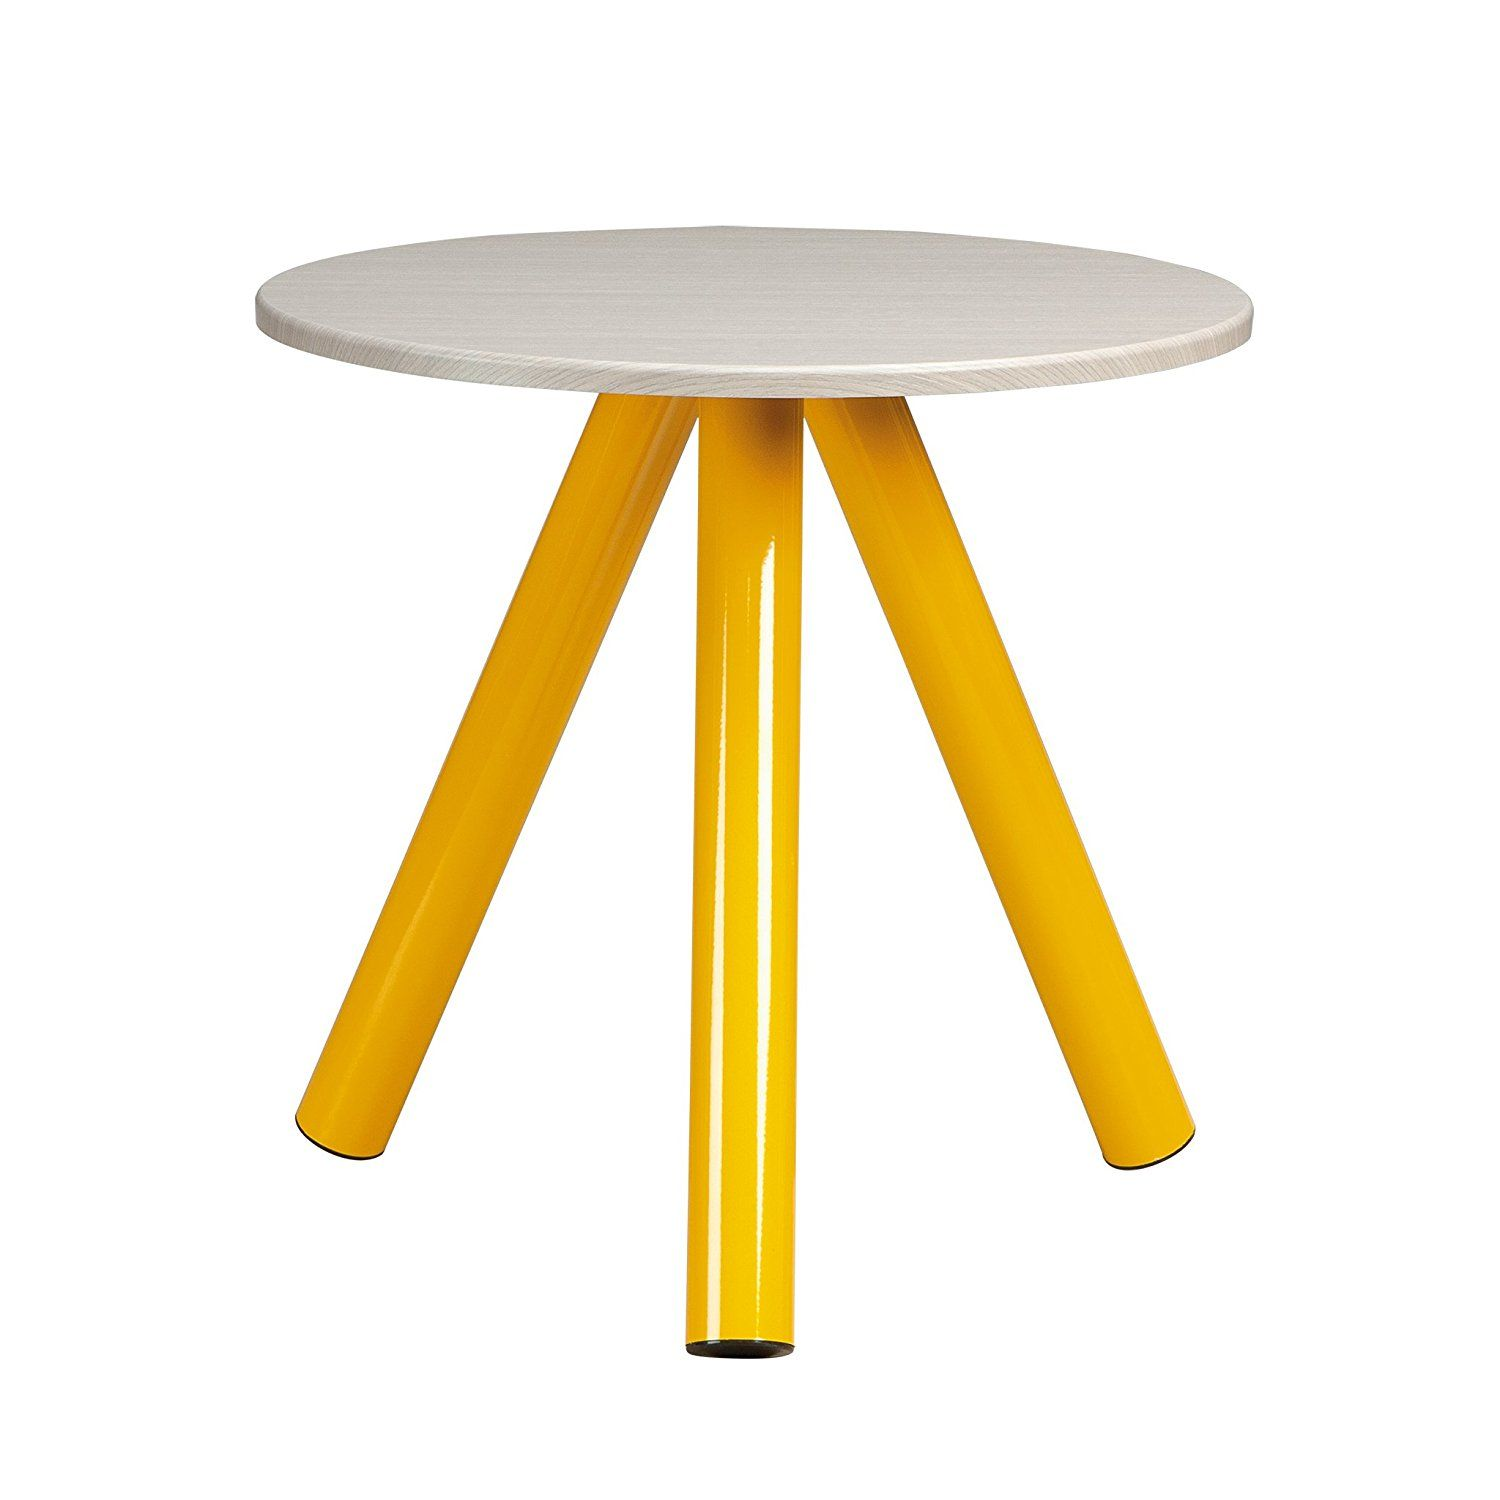 Amazon Com Sauder Soft Modern Collection Side Table Yellow X2f White Kitchen Amp Dining Modern Side Table Side Table Living Room Decor Furniture [ 1500 x 1500 Pixel ]